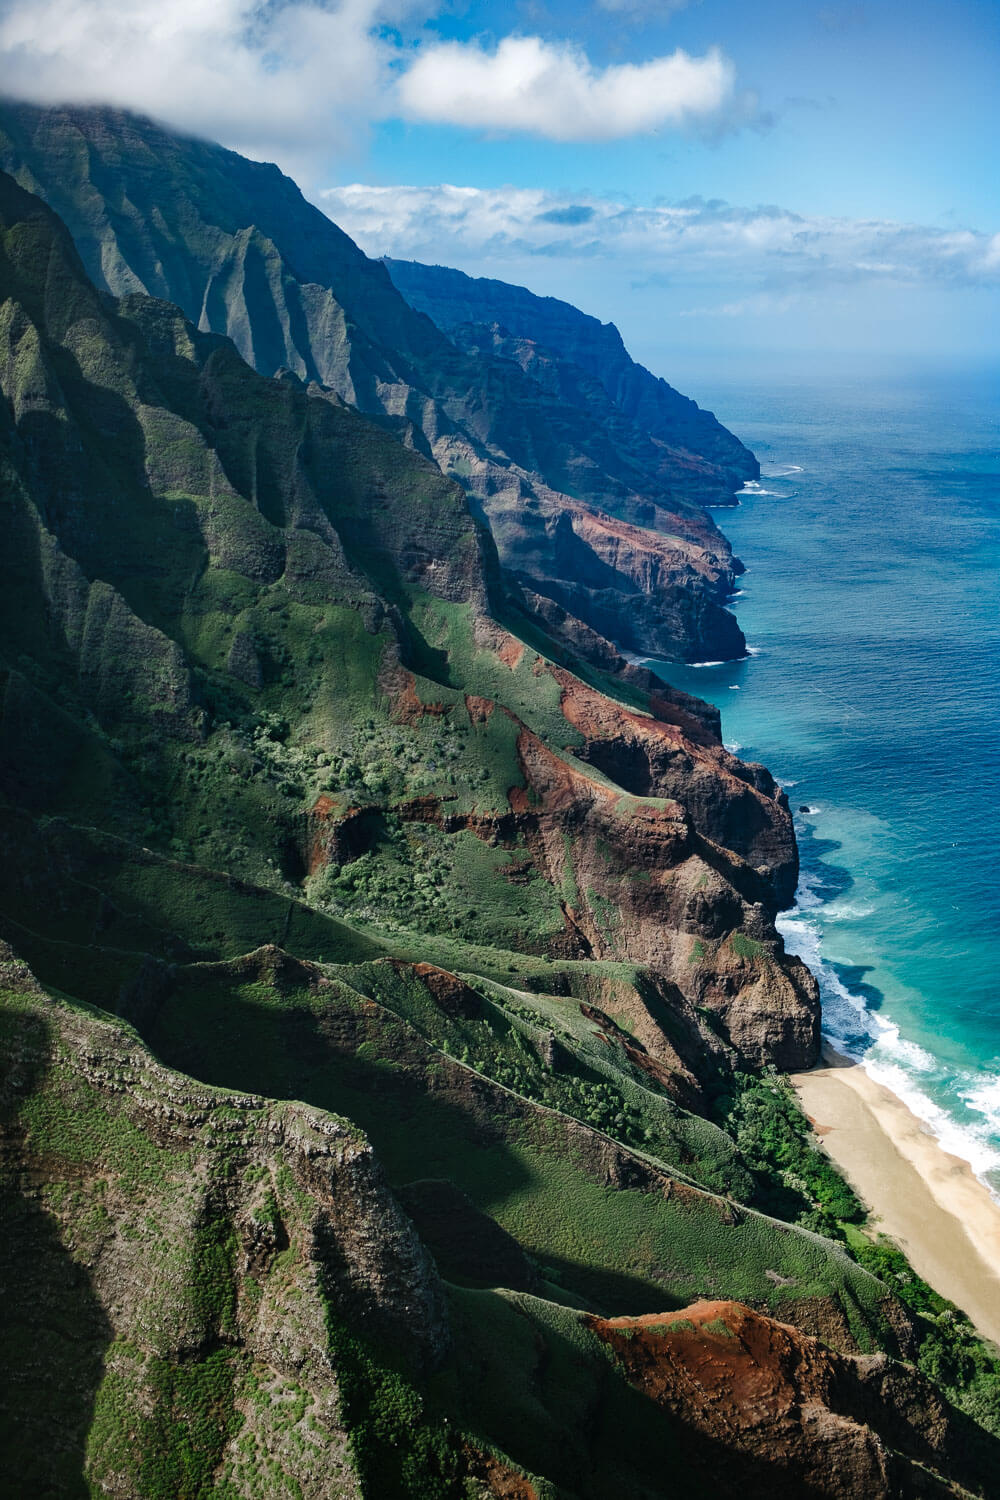 """Kauai coastline from the helicopter. Travel photography and guide by © Natasha Lequepeys for """"And Then I Met Yoko"""". #hawaii #travelguide #photoblog #travelblog #landscapephotography #fujifilm"""